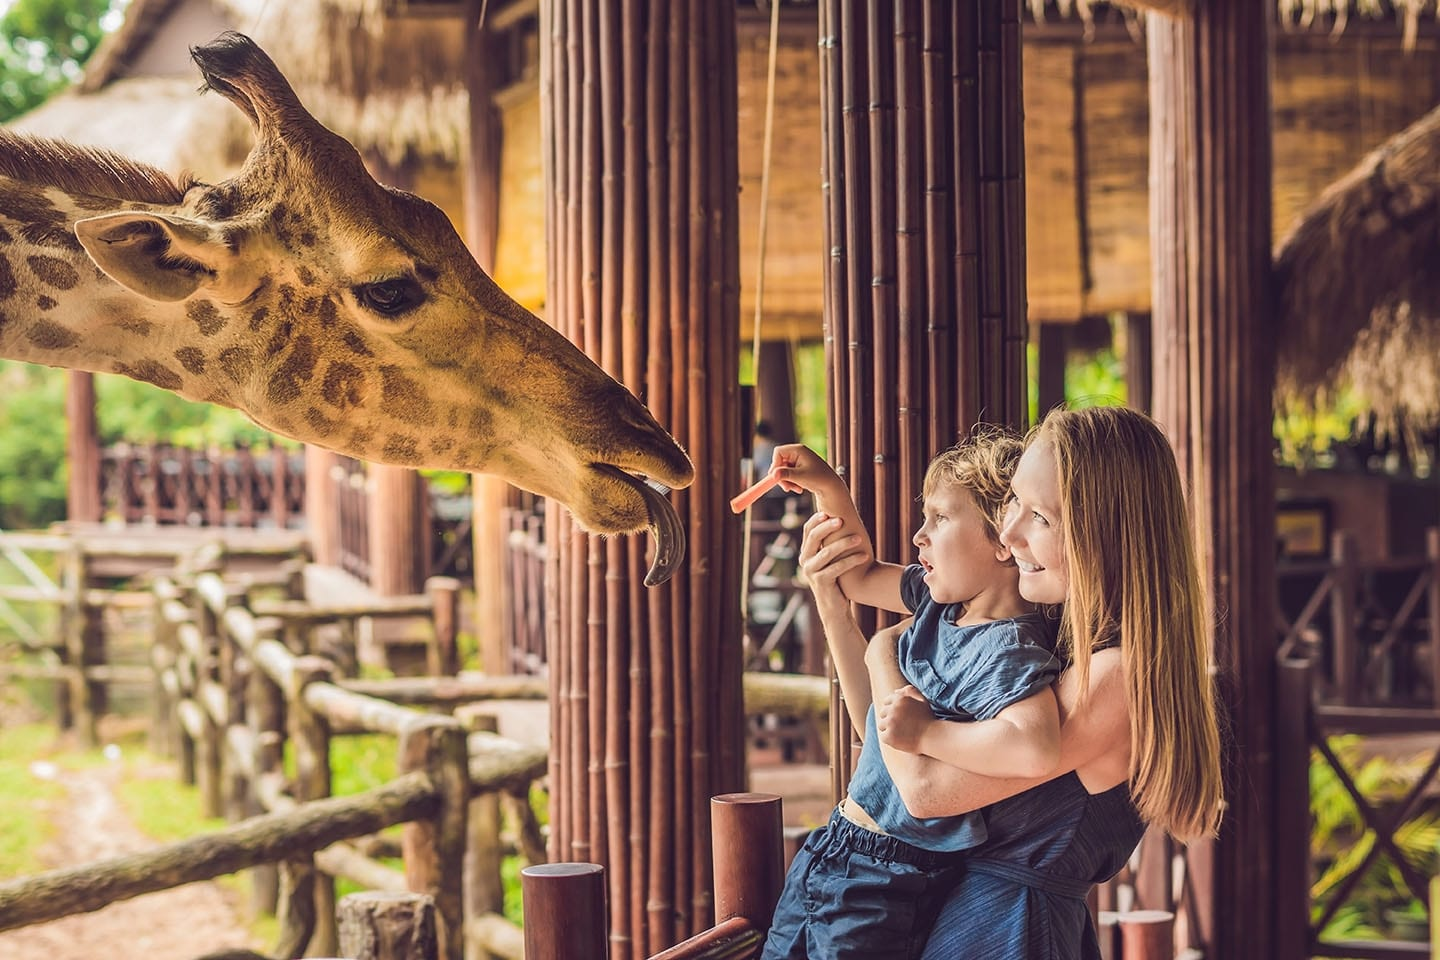 Mother & son feeding a giraffe at the Naples Zoo at Caribbean Gardens in Naples Florida